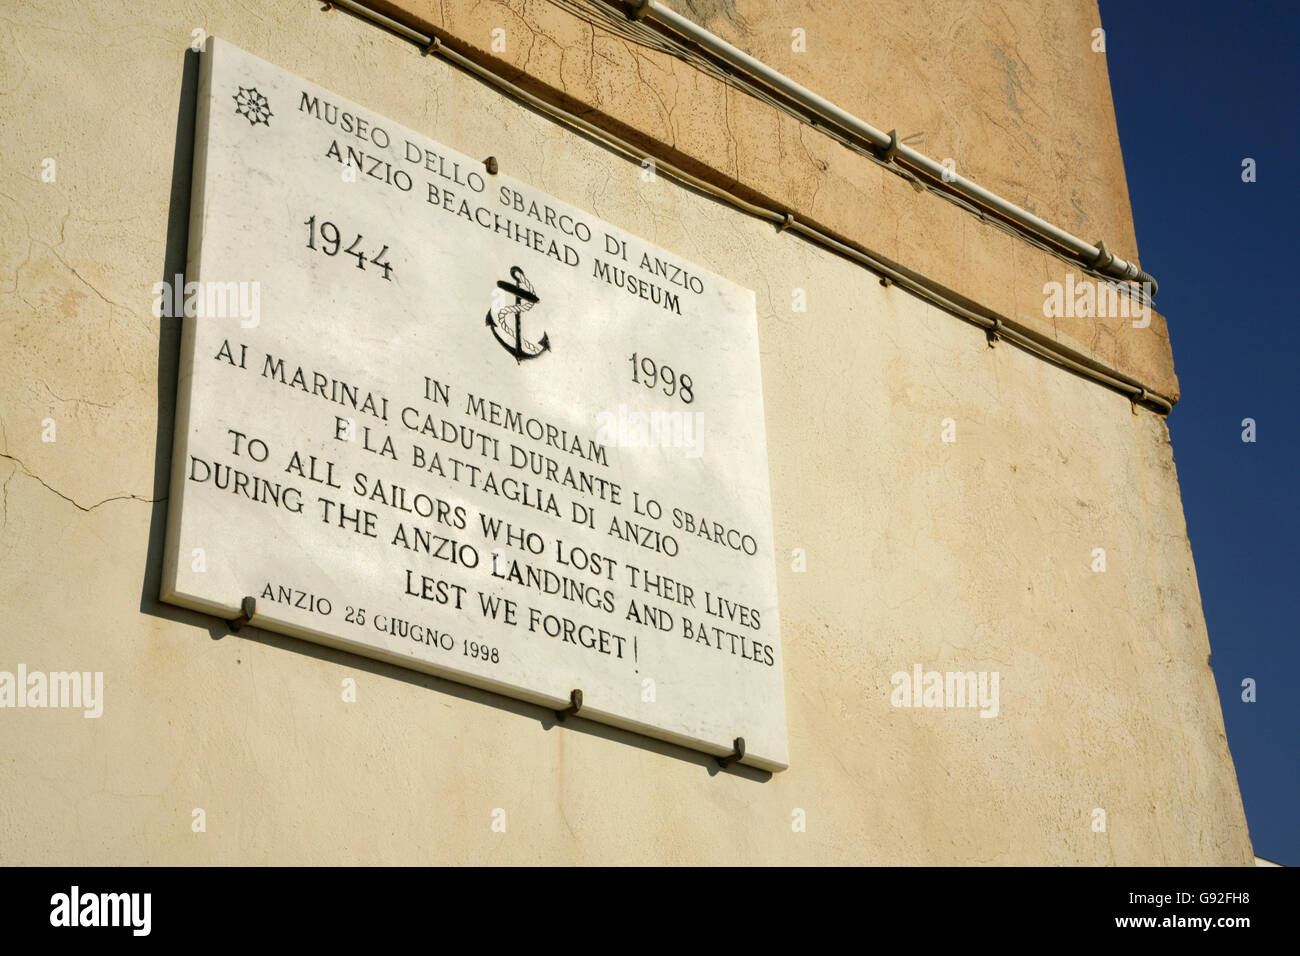 Memorial stone for the Allied landings at Anzio, Italy during World War 2. - Stock Image